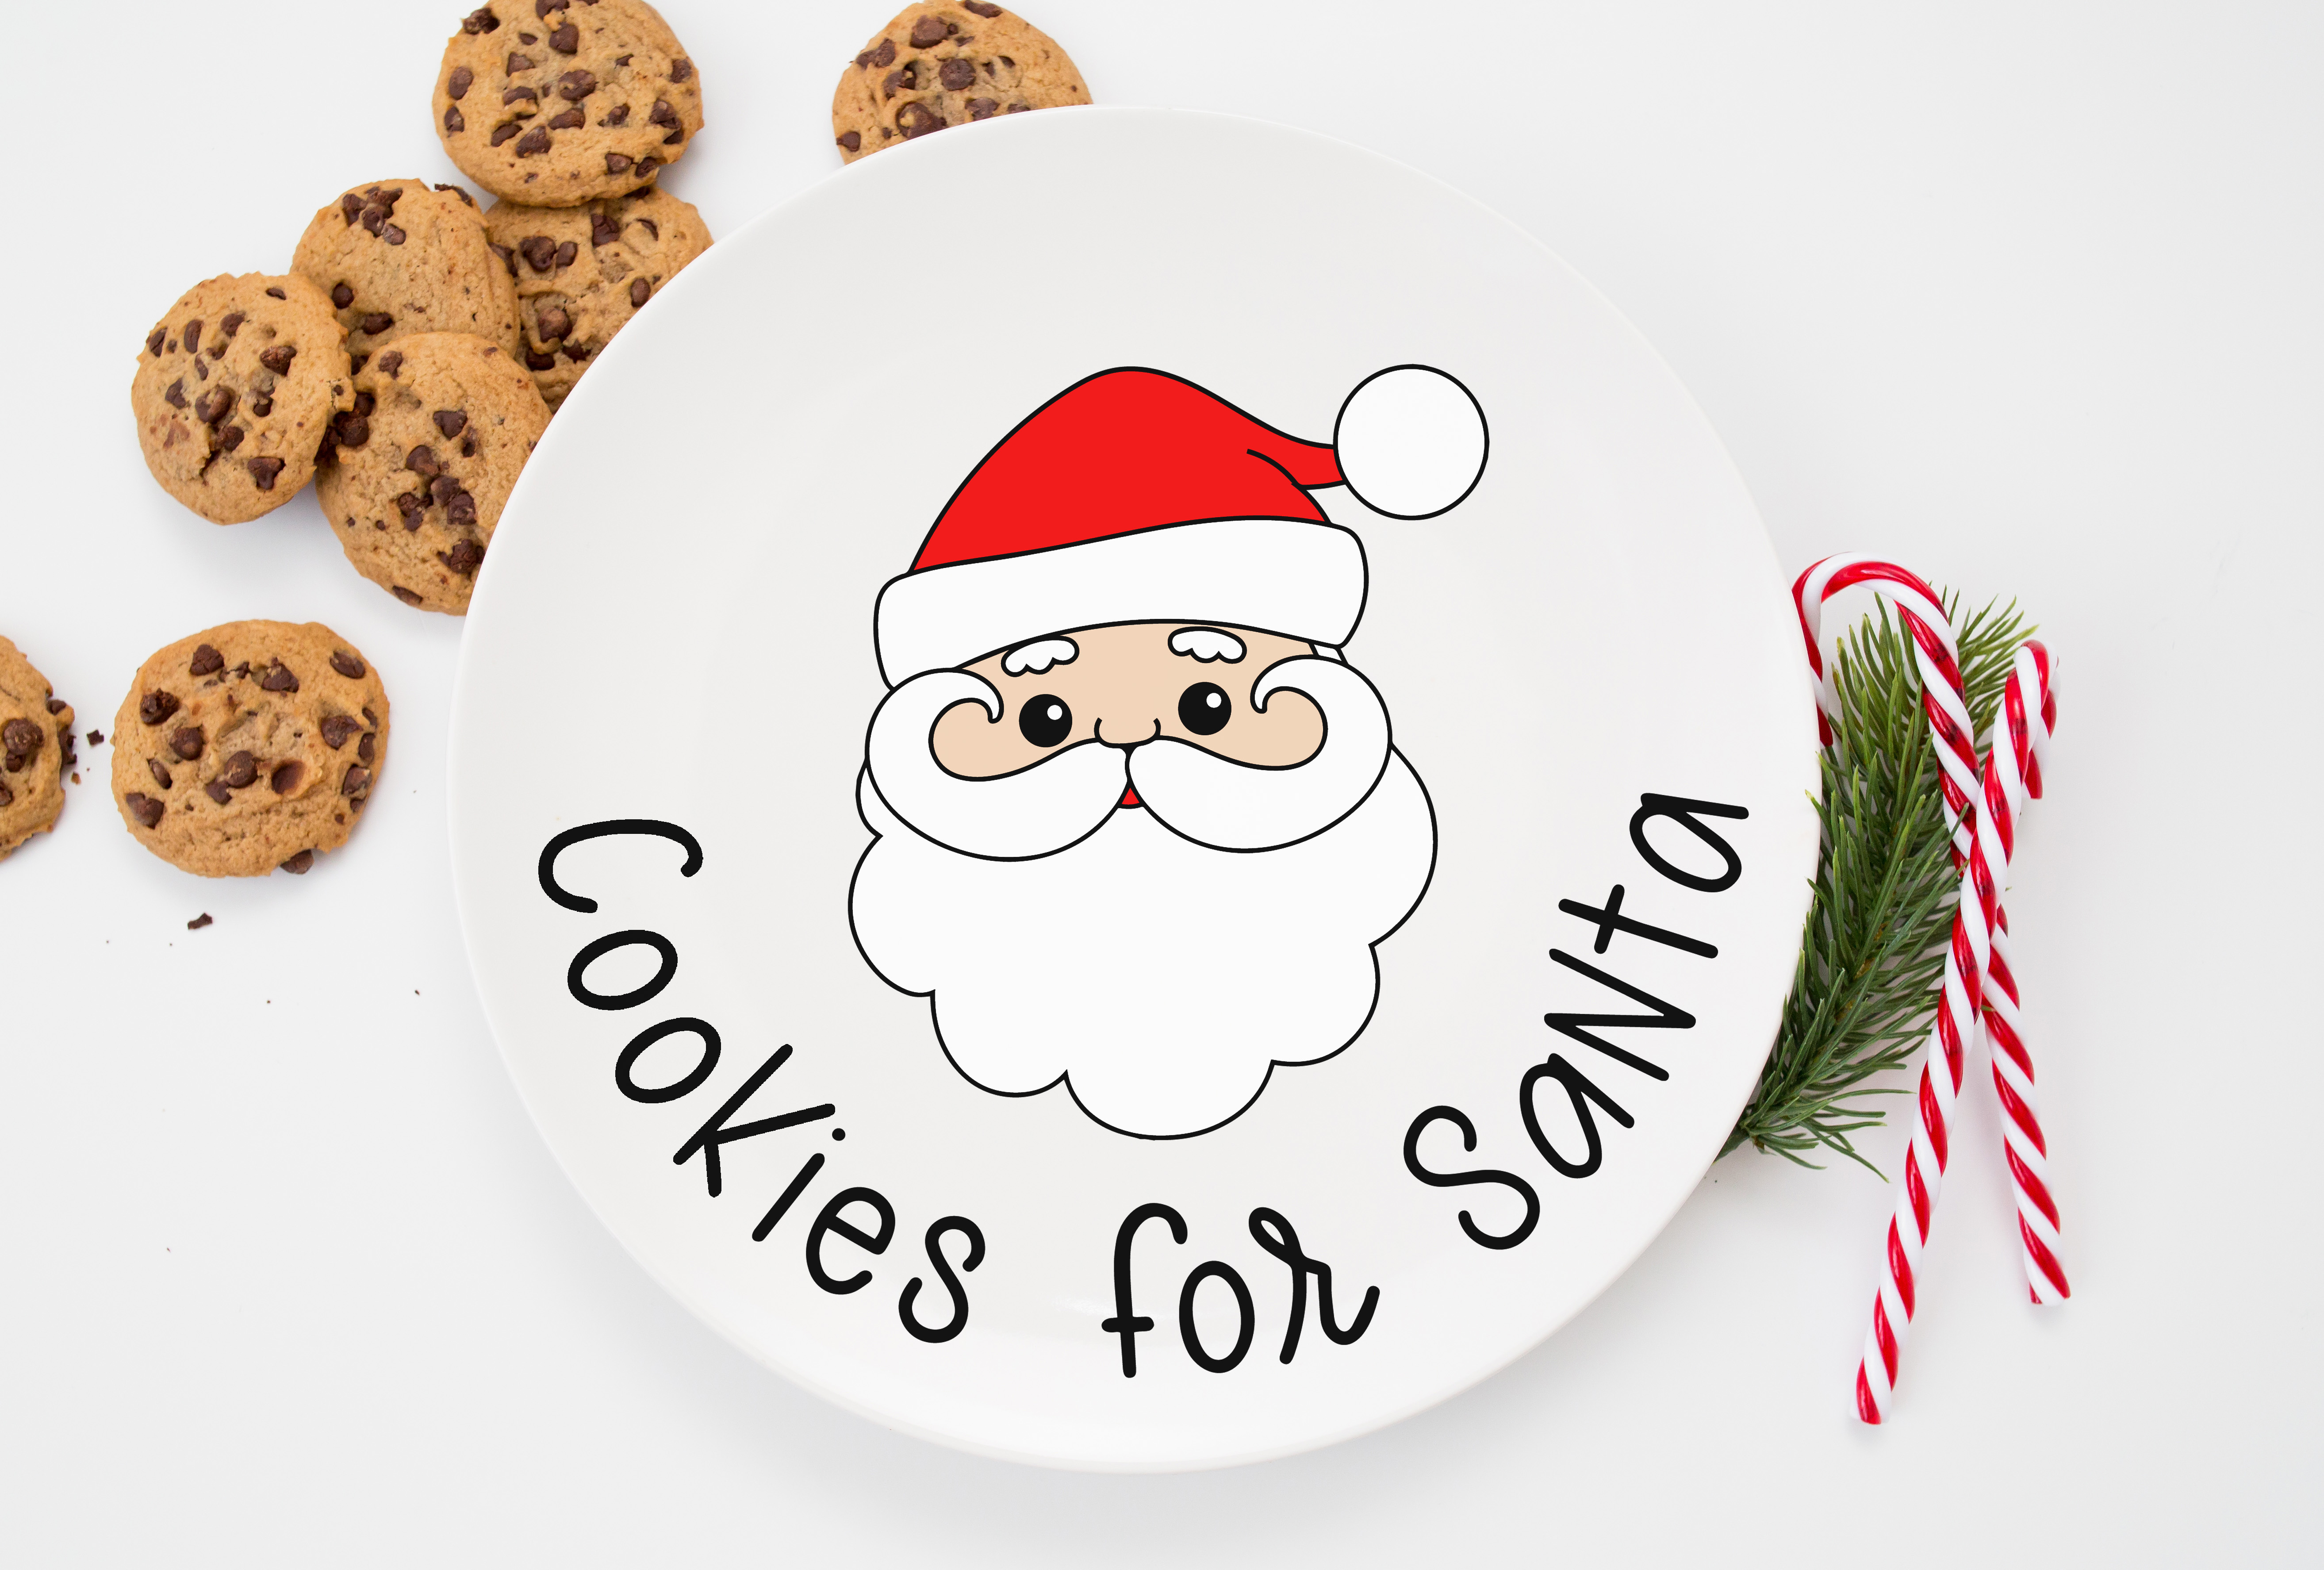 Cookies For Santa Plate Free Christmas Svgs Happiness Is Homemade